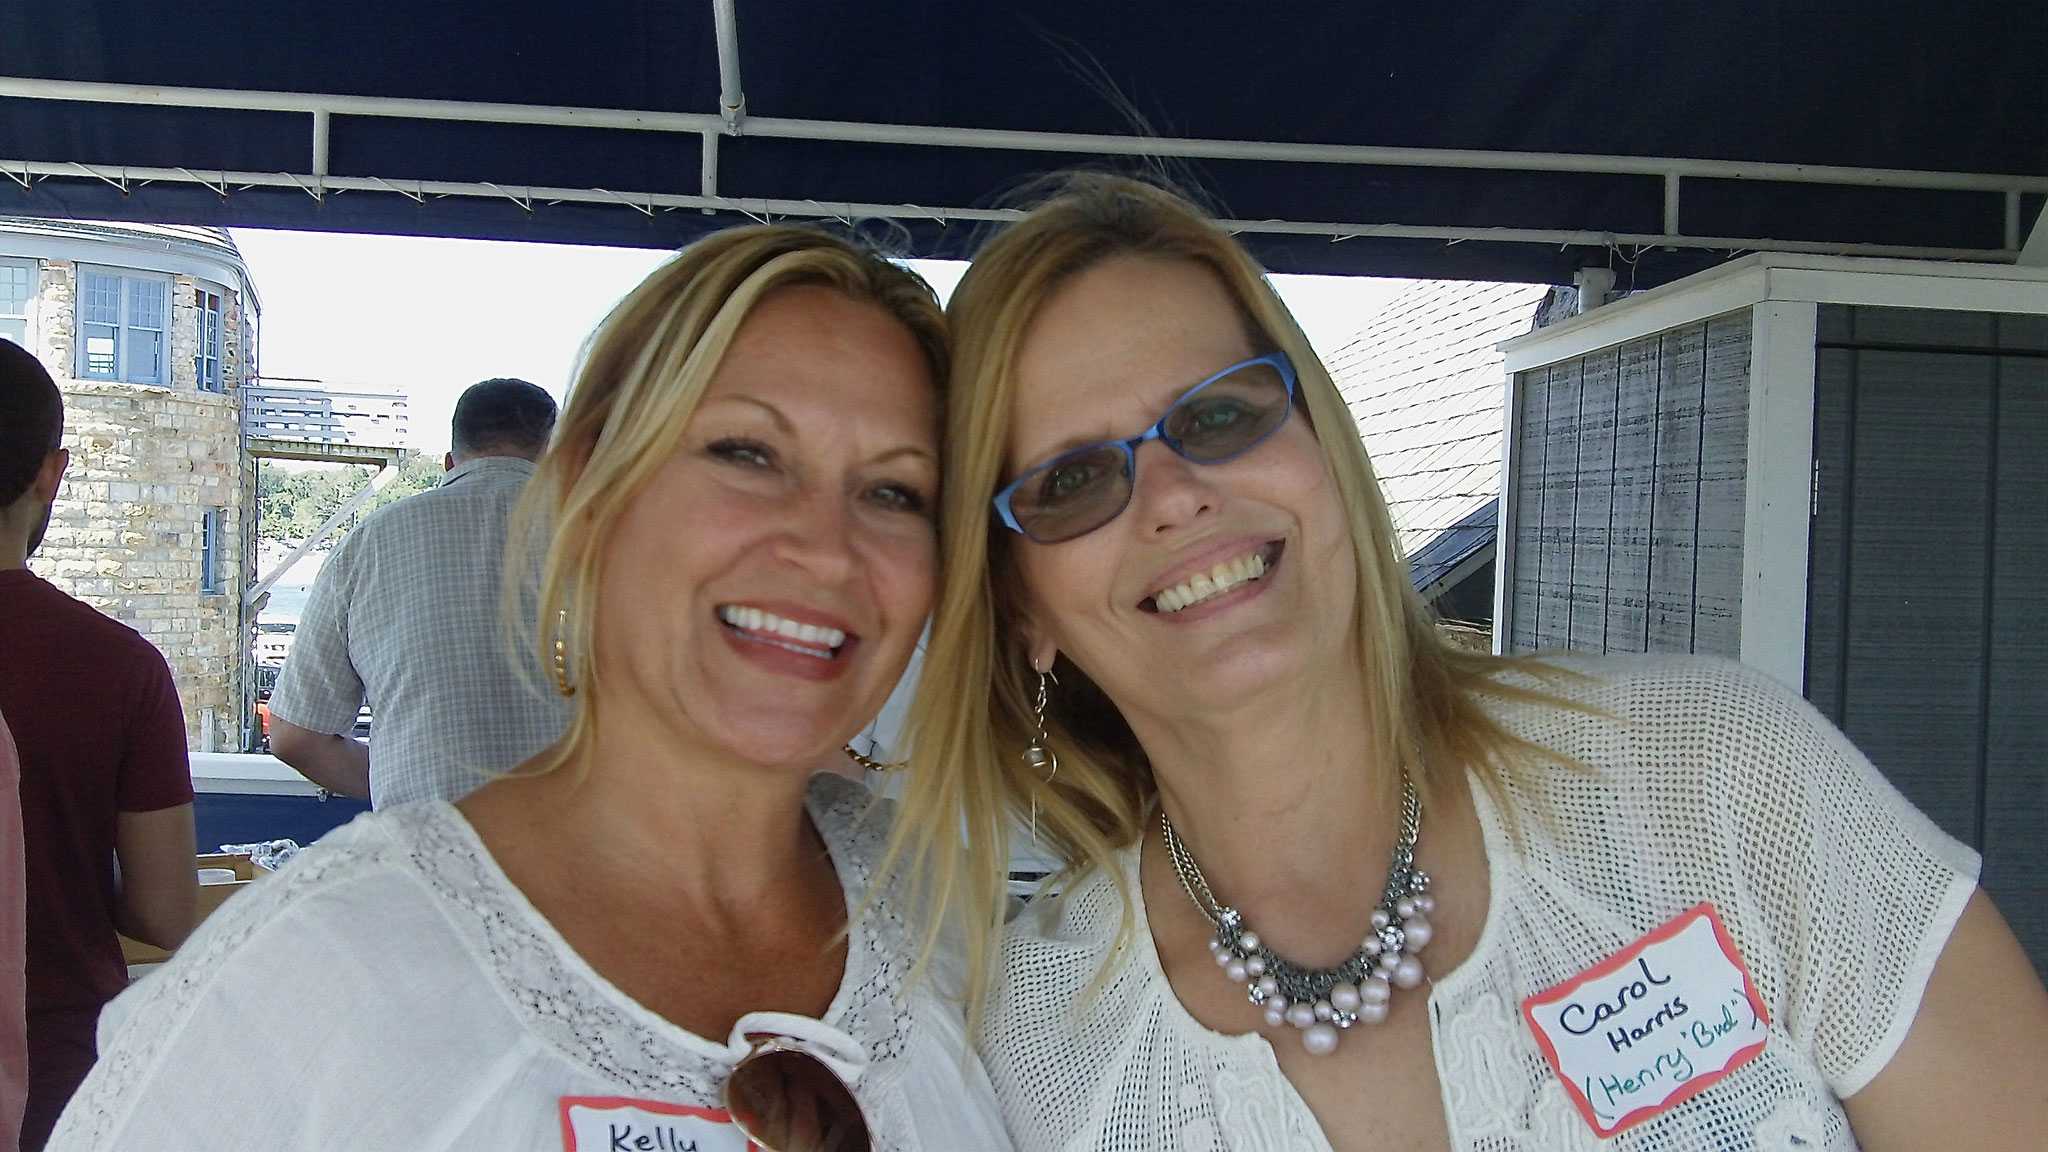 Kelly Varatta (Paula's daughter, Frank's granddaughter) & Carol Harris (Bud's daughter)